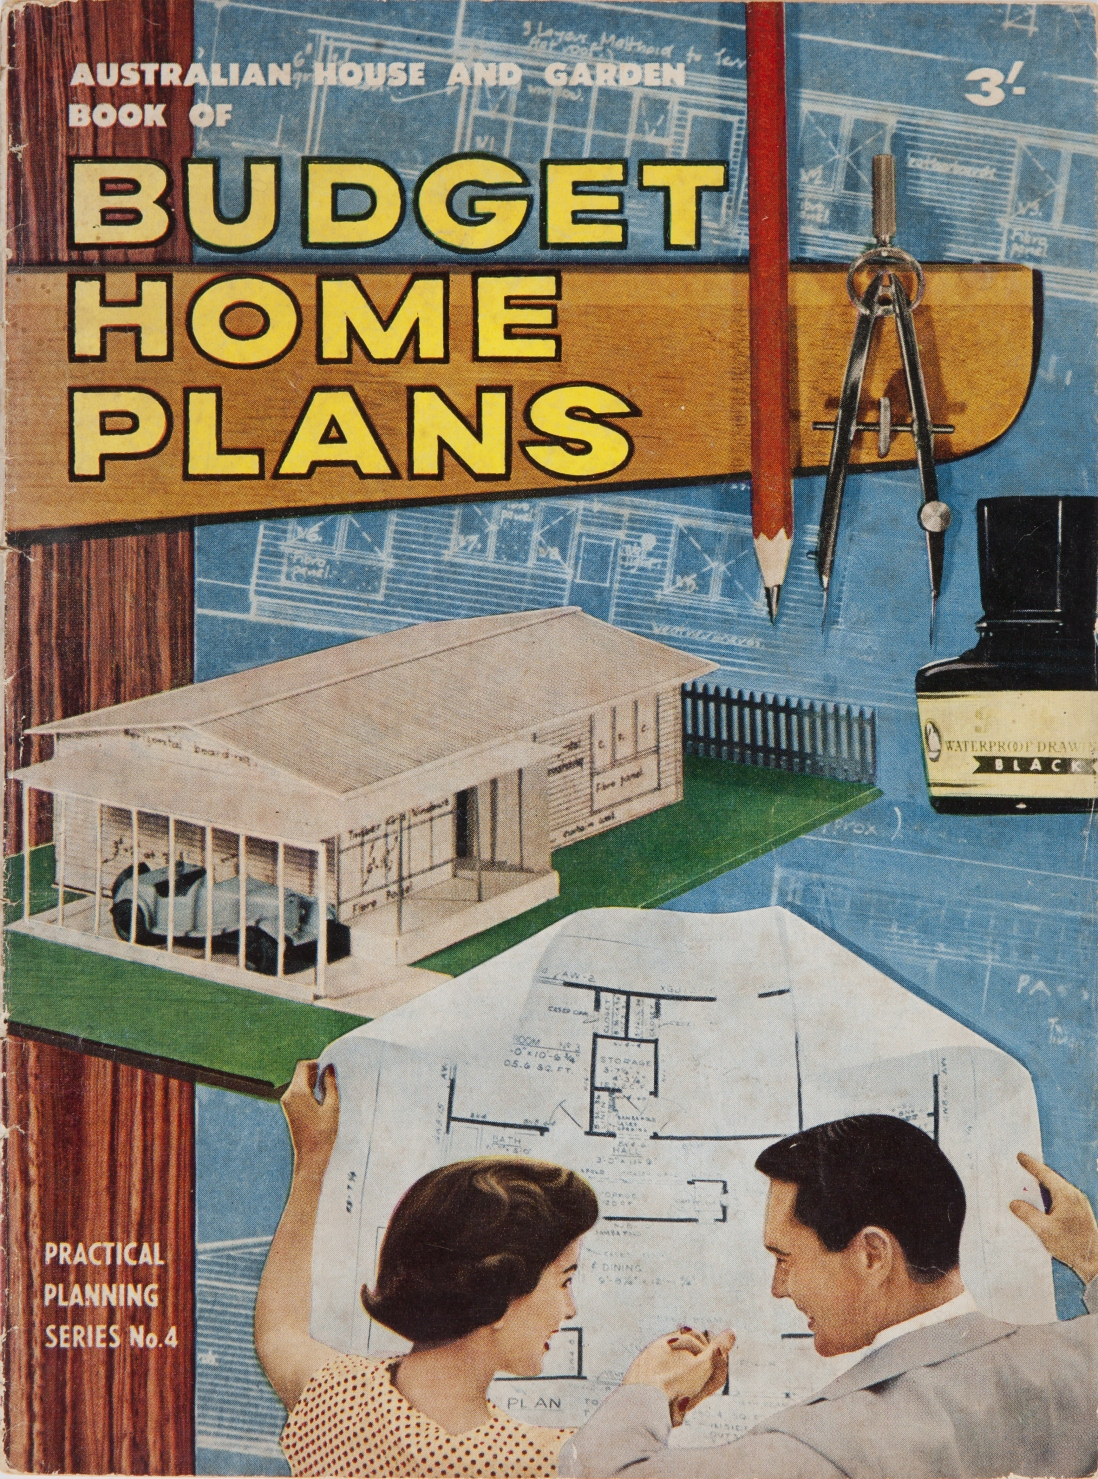 Cover of book, with colour illustration of house and two people looking at a home plan.